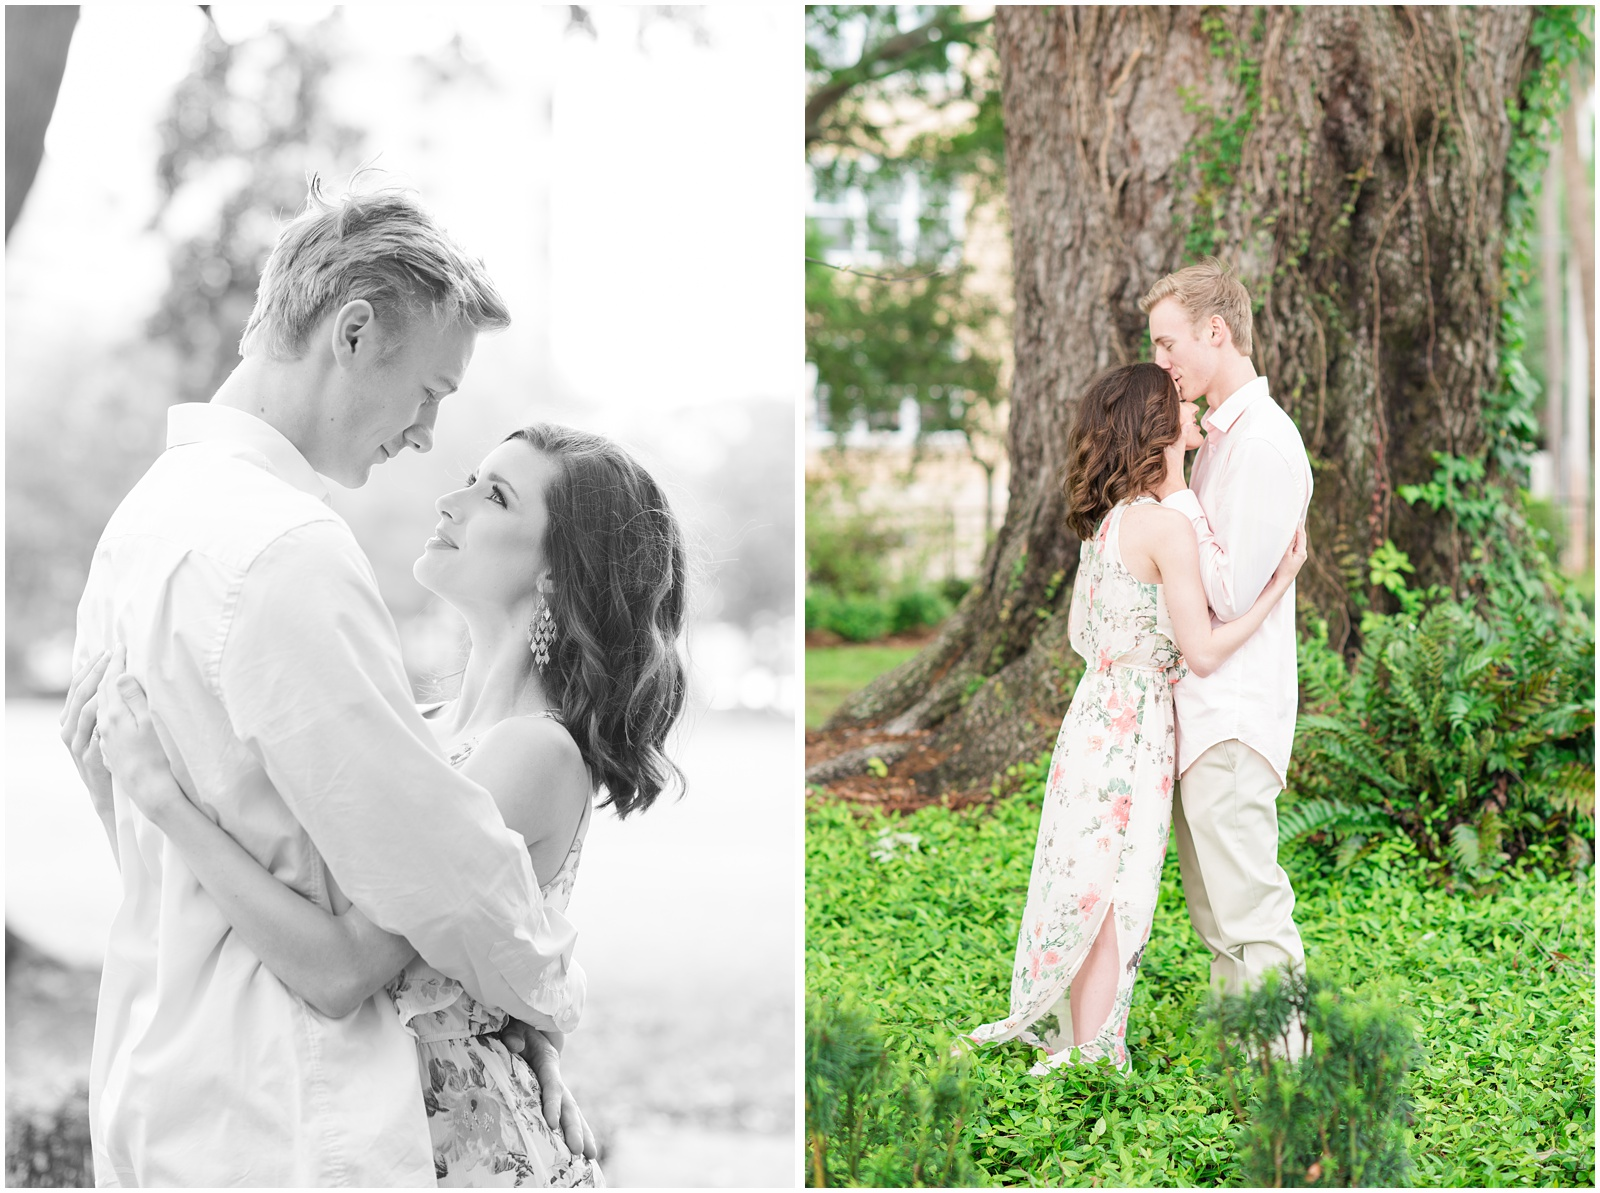 Jacksonville_Florida_Memorial Park_Engagement_Portraits_9.jpg